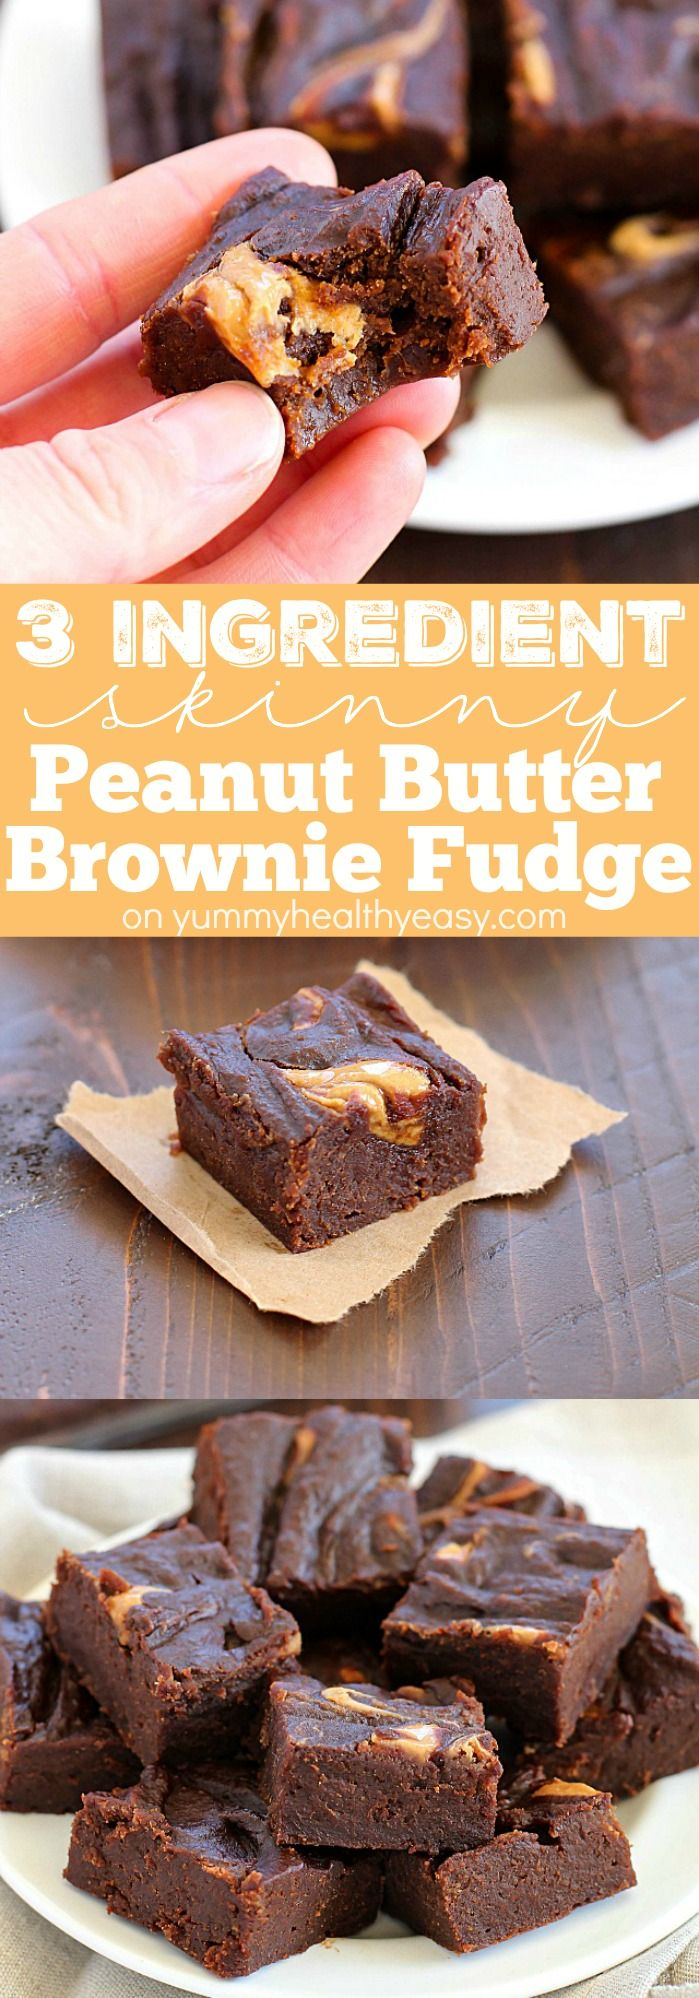 If you're looking for a chocolate fix but don't want all the calories, you have to try this 3 Ingredient Skinny Peanut Butter Brownie Fudge! Only 42 calories for a chunk of fudgy, chocolate marbled, peanut butter deliciousness!